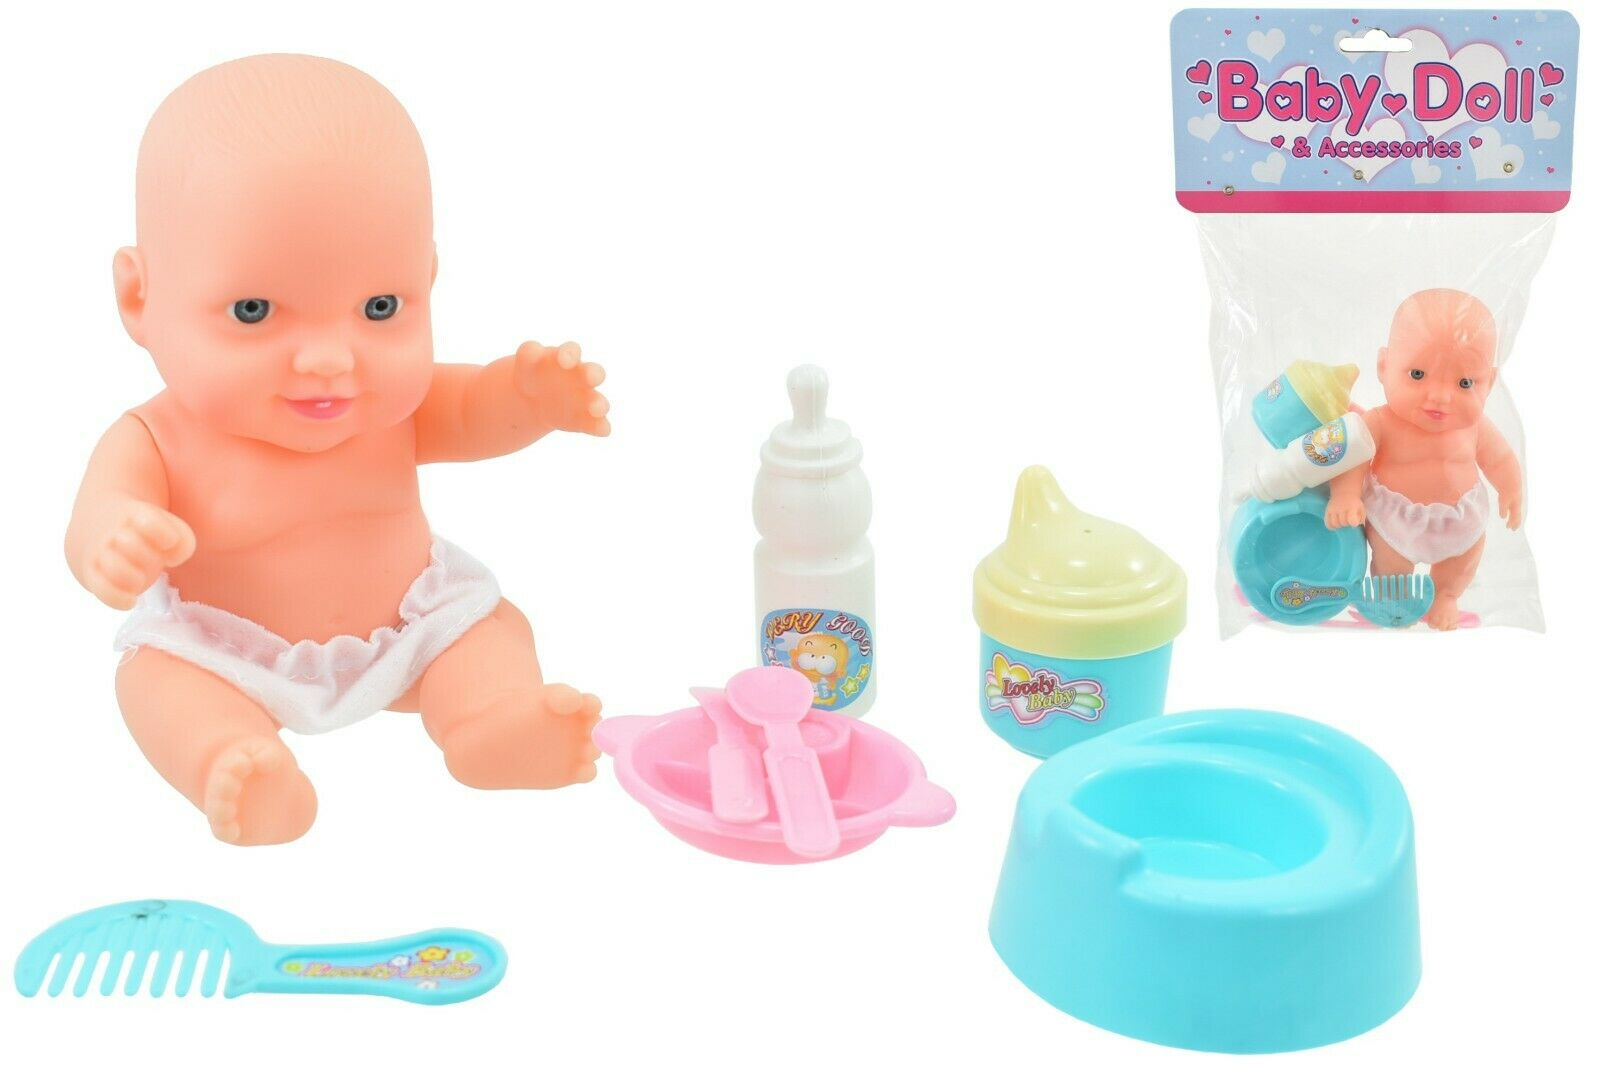 New Born Baby Doll Toy Kids Interactive Girls Play Set In Polybag W/Accessories